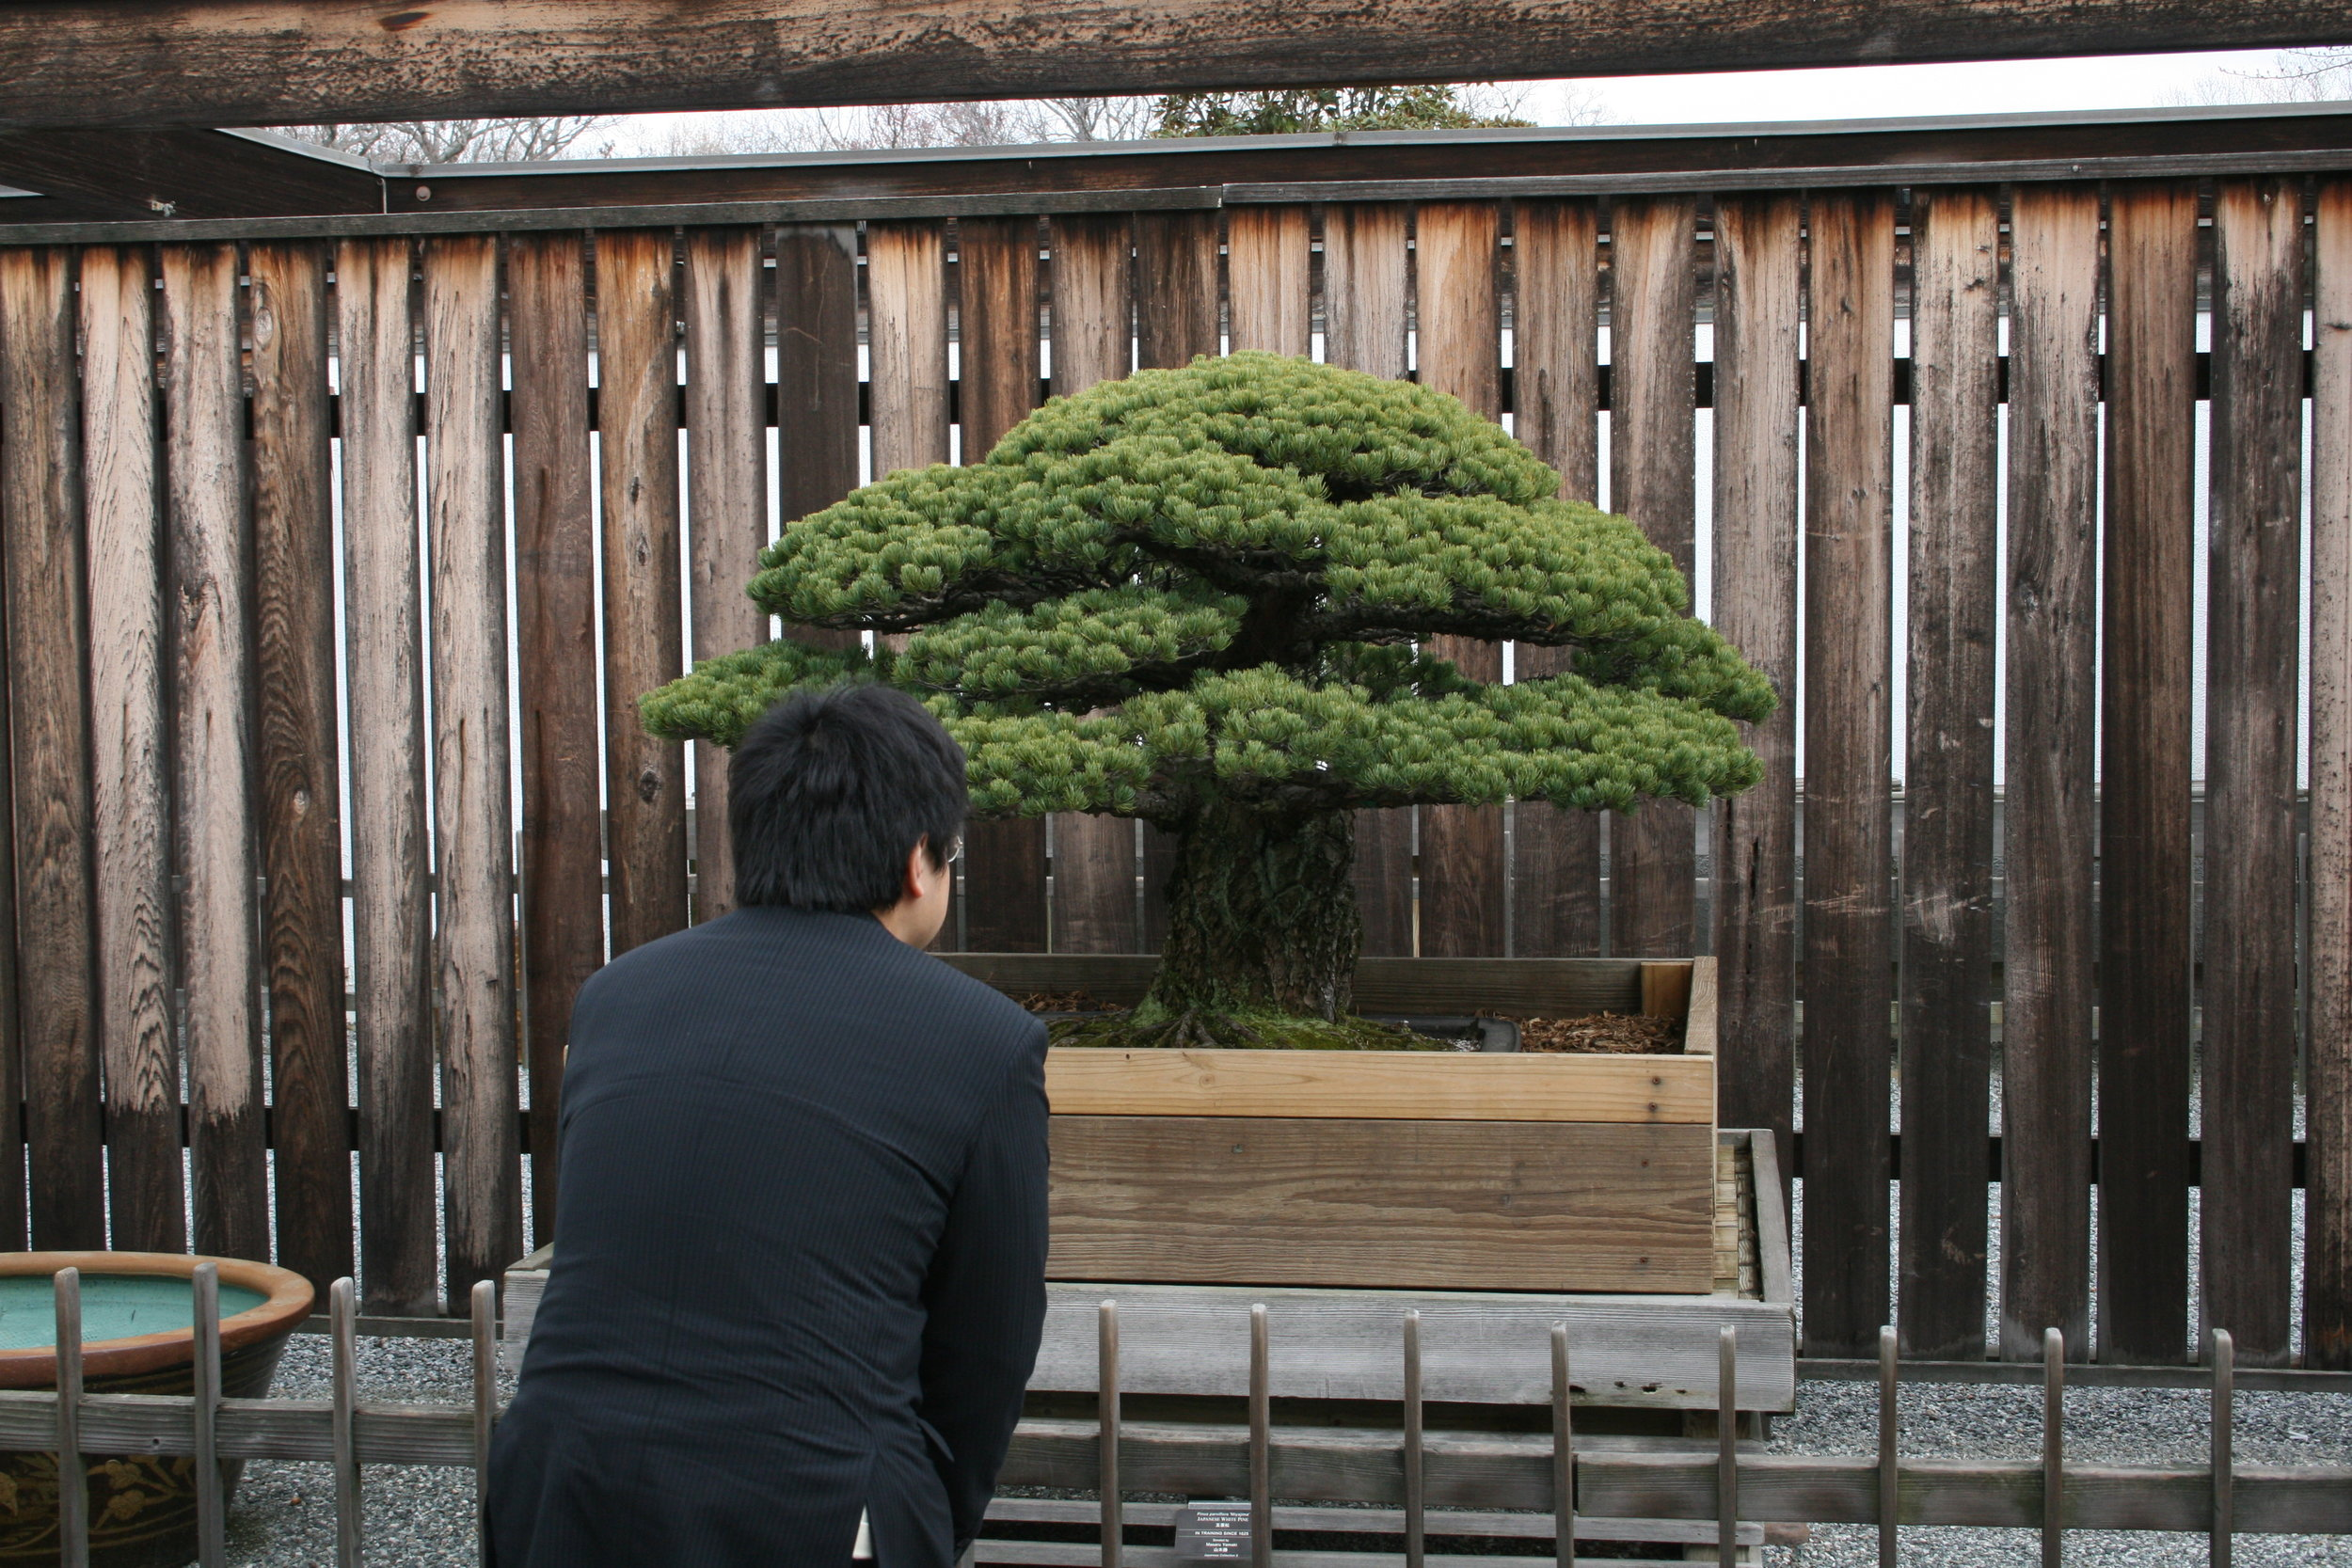 Yamaki grandson bows to the tree at the Museum. The tree and its roots are prepped for winter storage with a custom built wooden container.